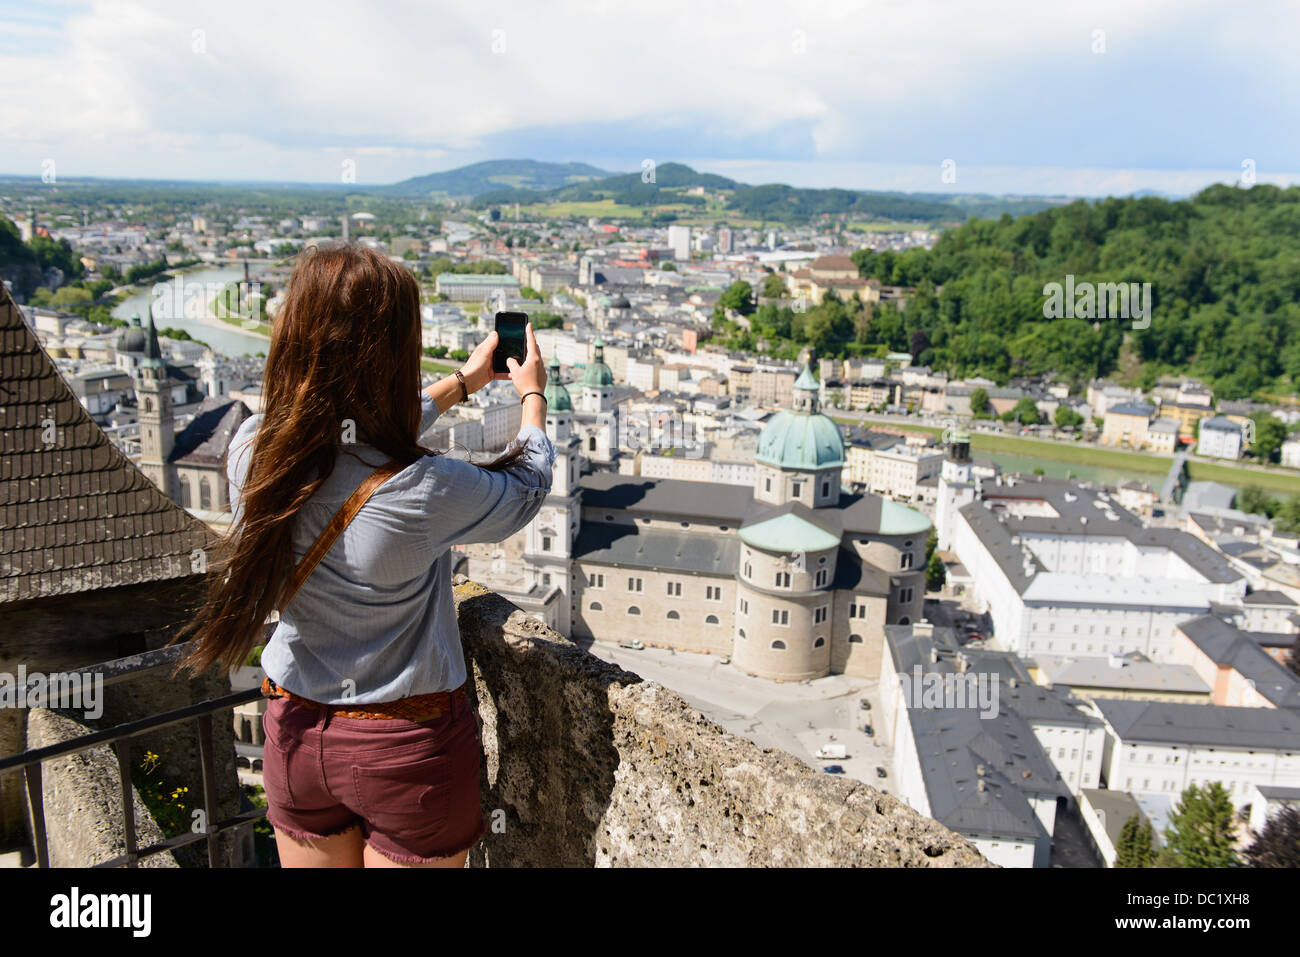 Female tourist photographing view of the city, Salzburg, Austria - Stock Image